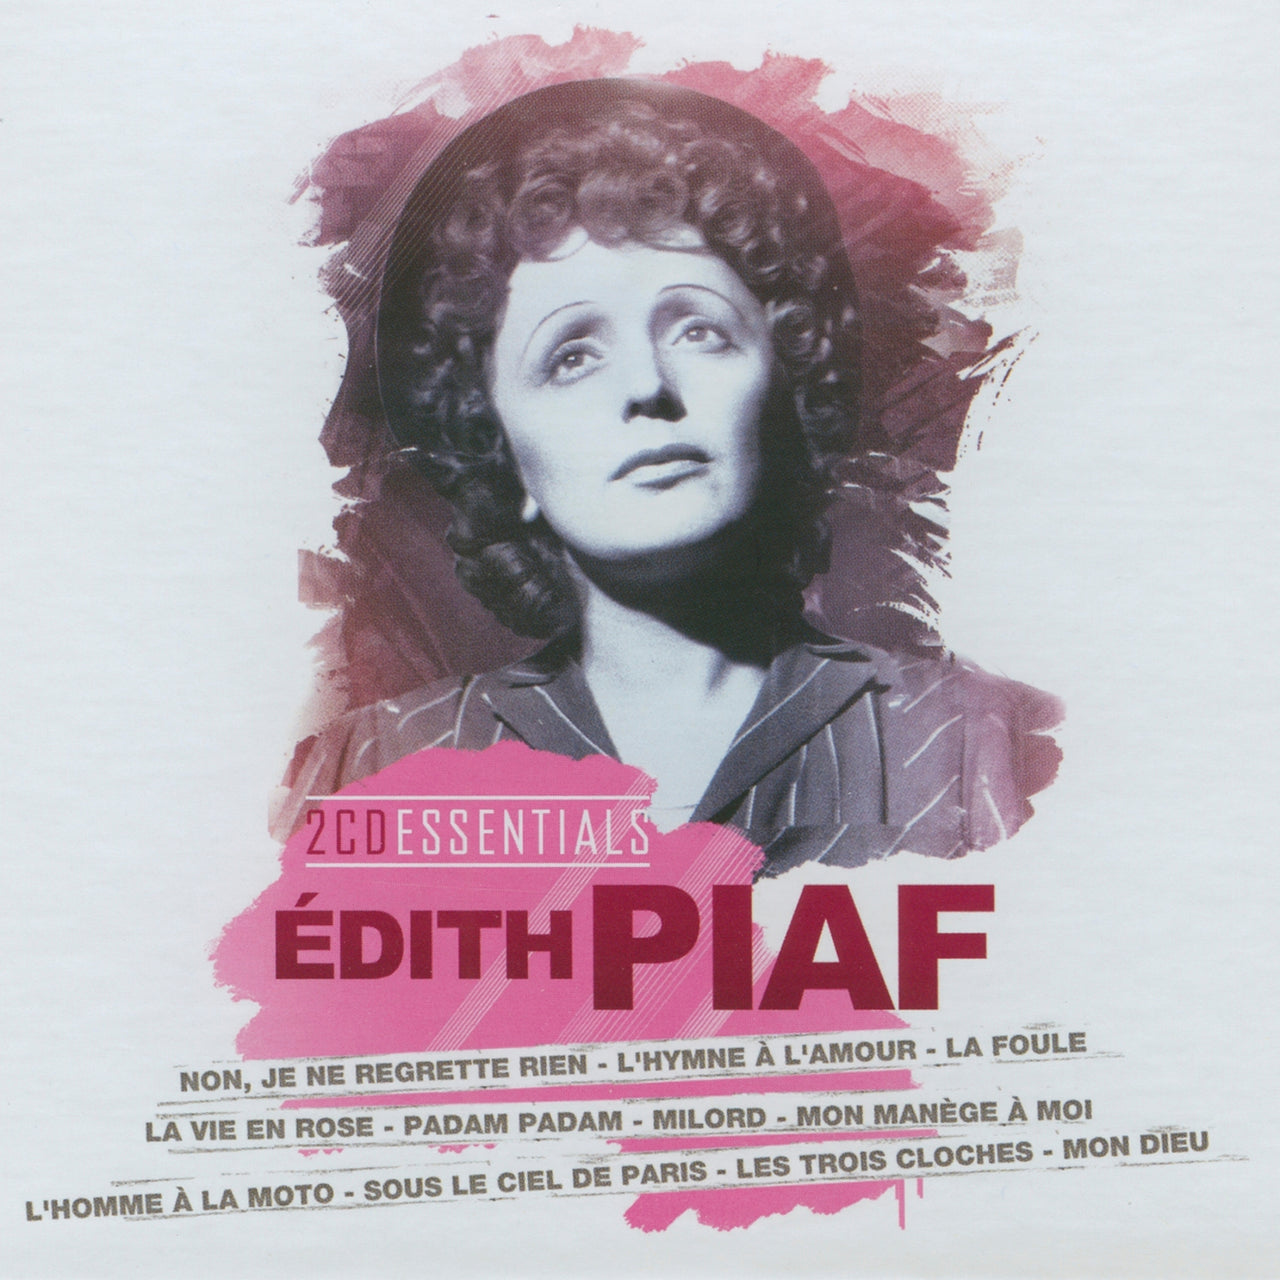 Piaf, Édith : Essentials  CD